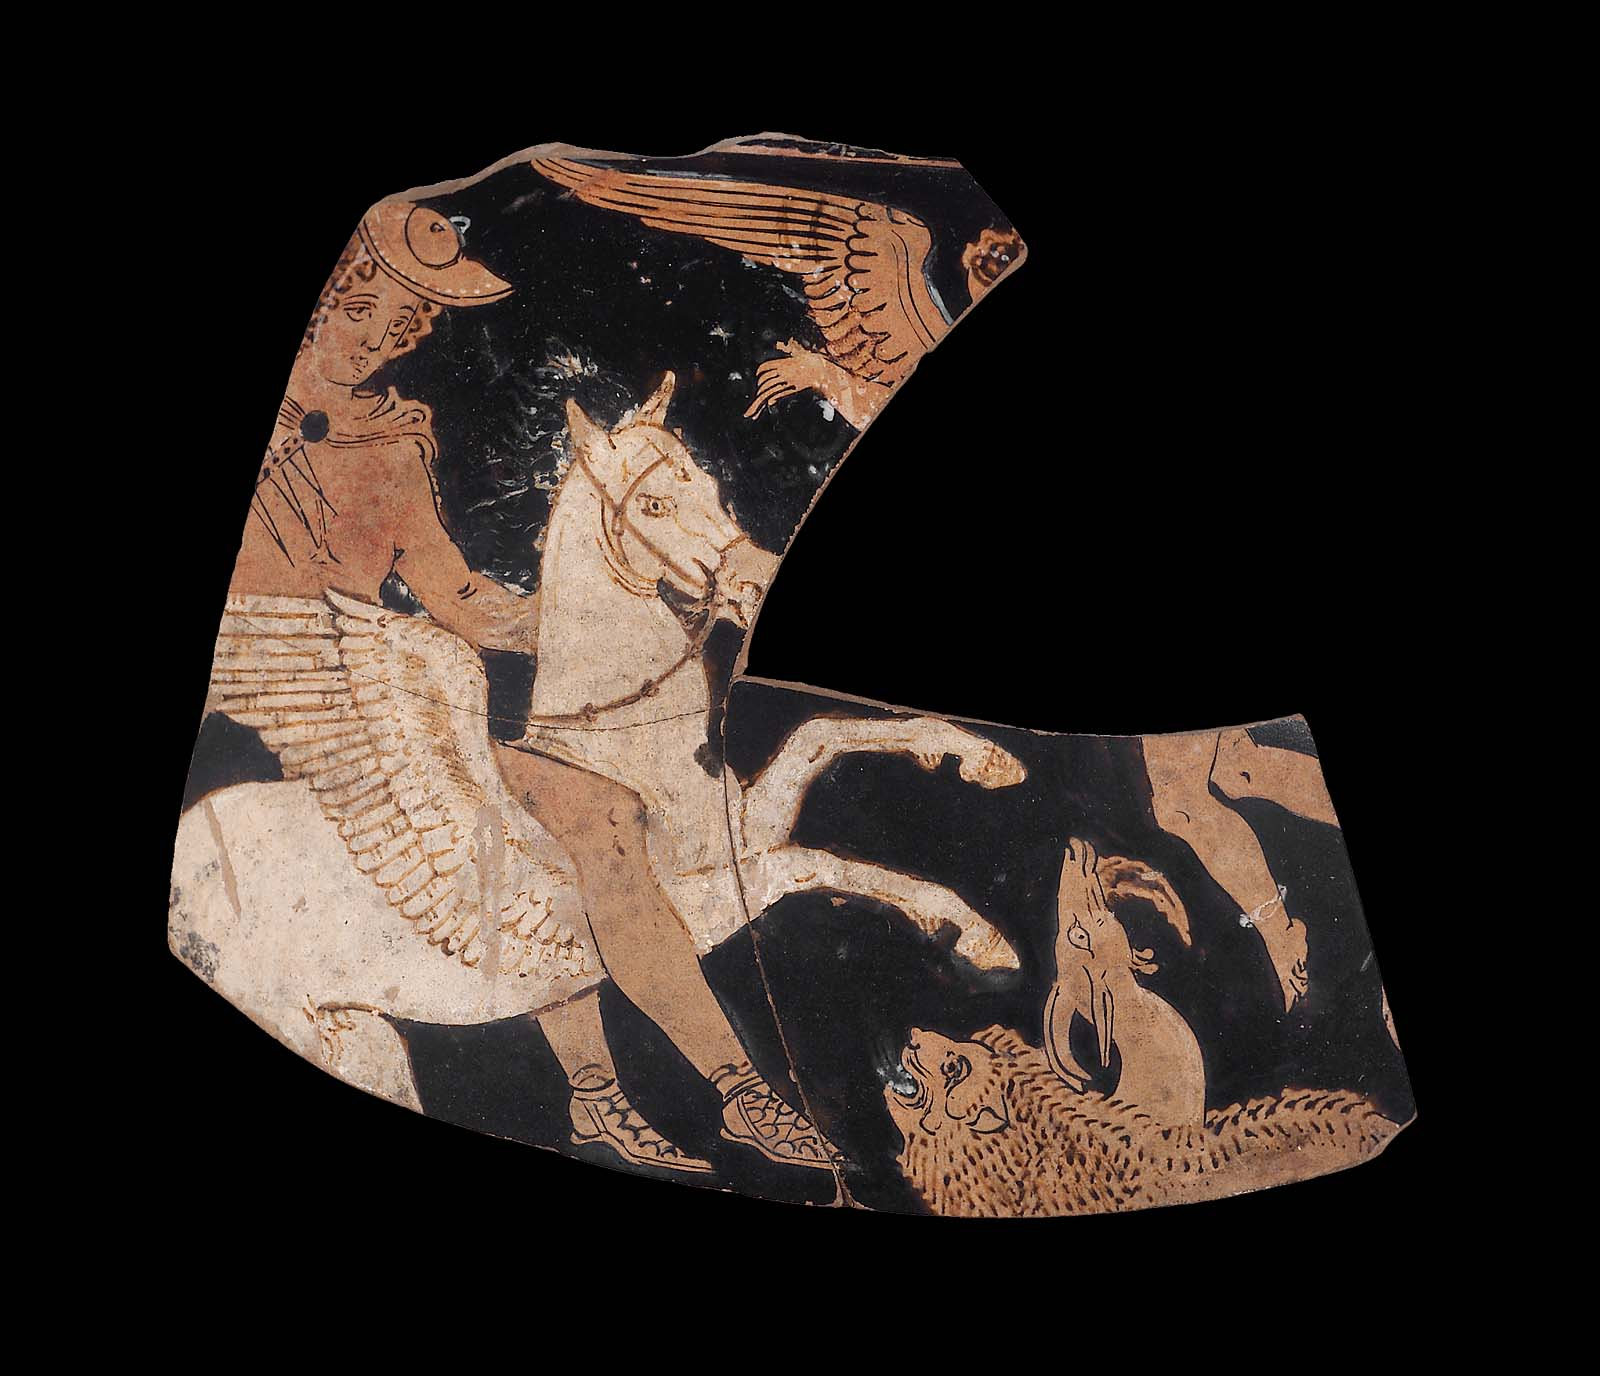 Fragment of an Oinochoe with Bellerophon mounted on Pegasus (white) attacking the Chimaera, cr. 350–340 BC, Italy, Apulia (Greek culture)